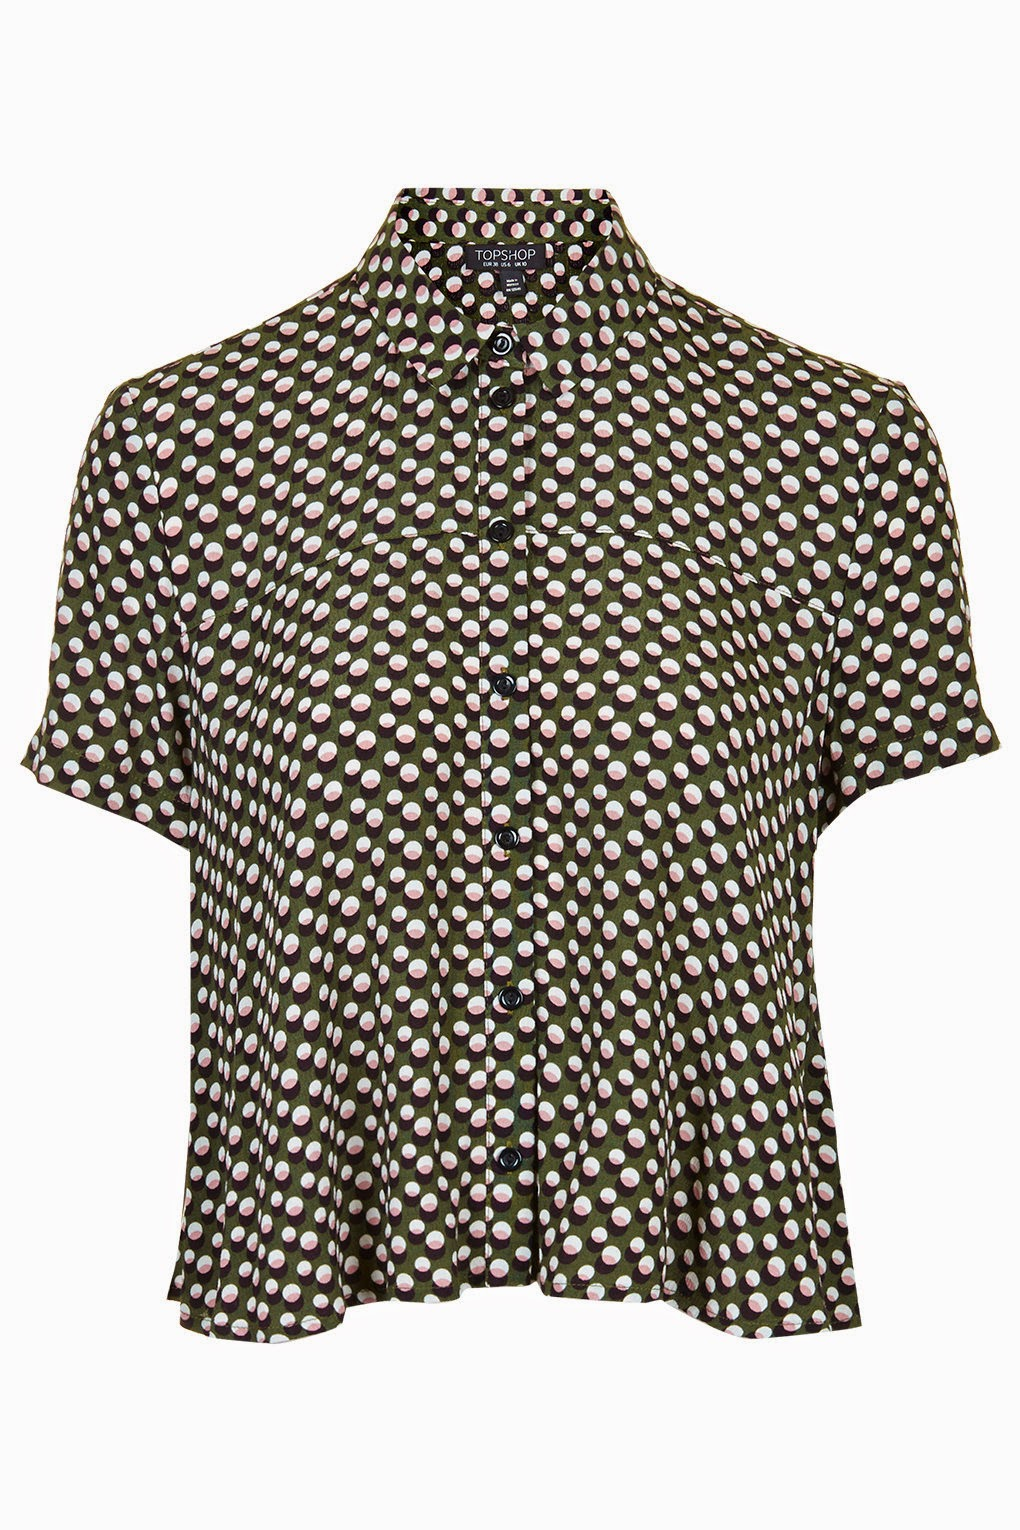 khaki spotty blouse